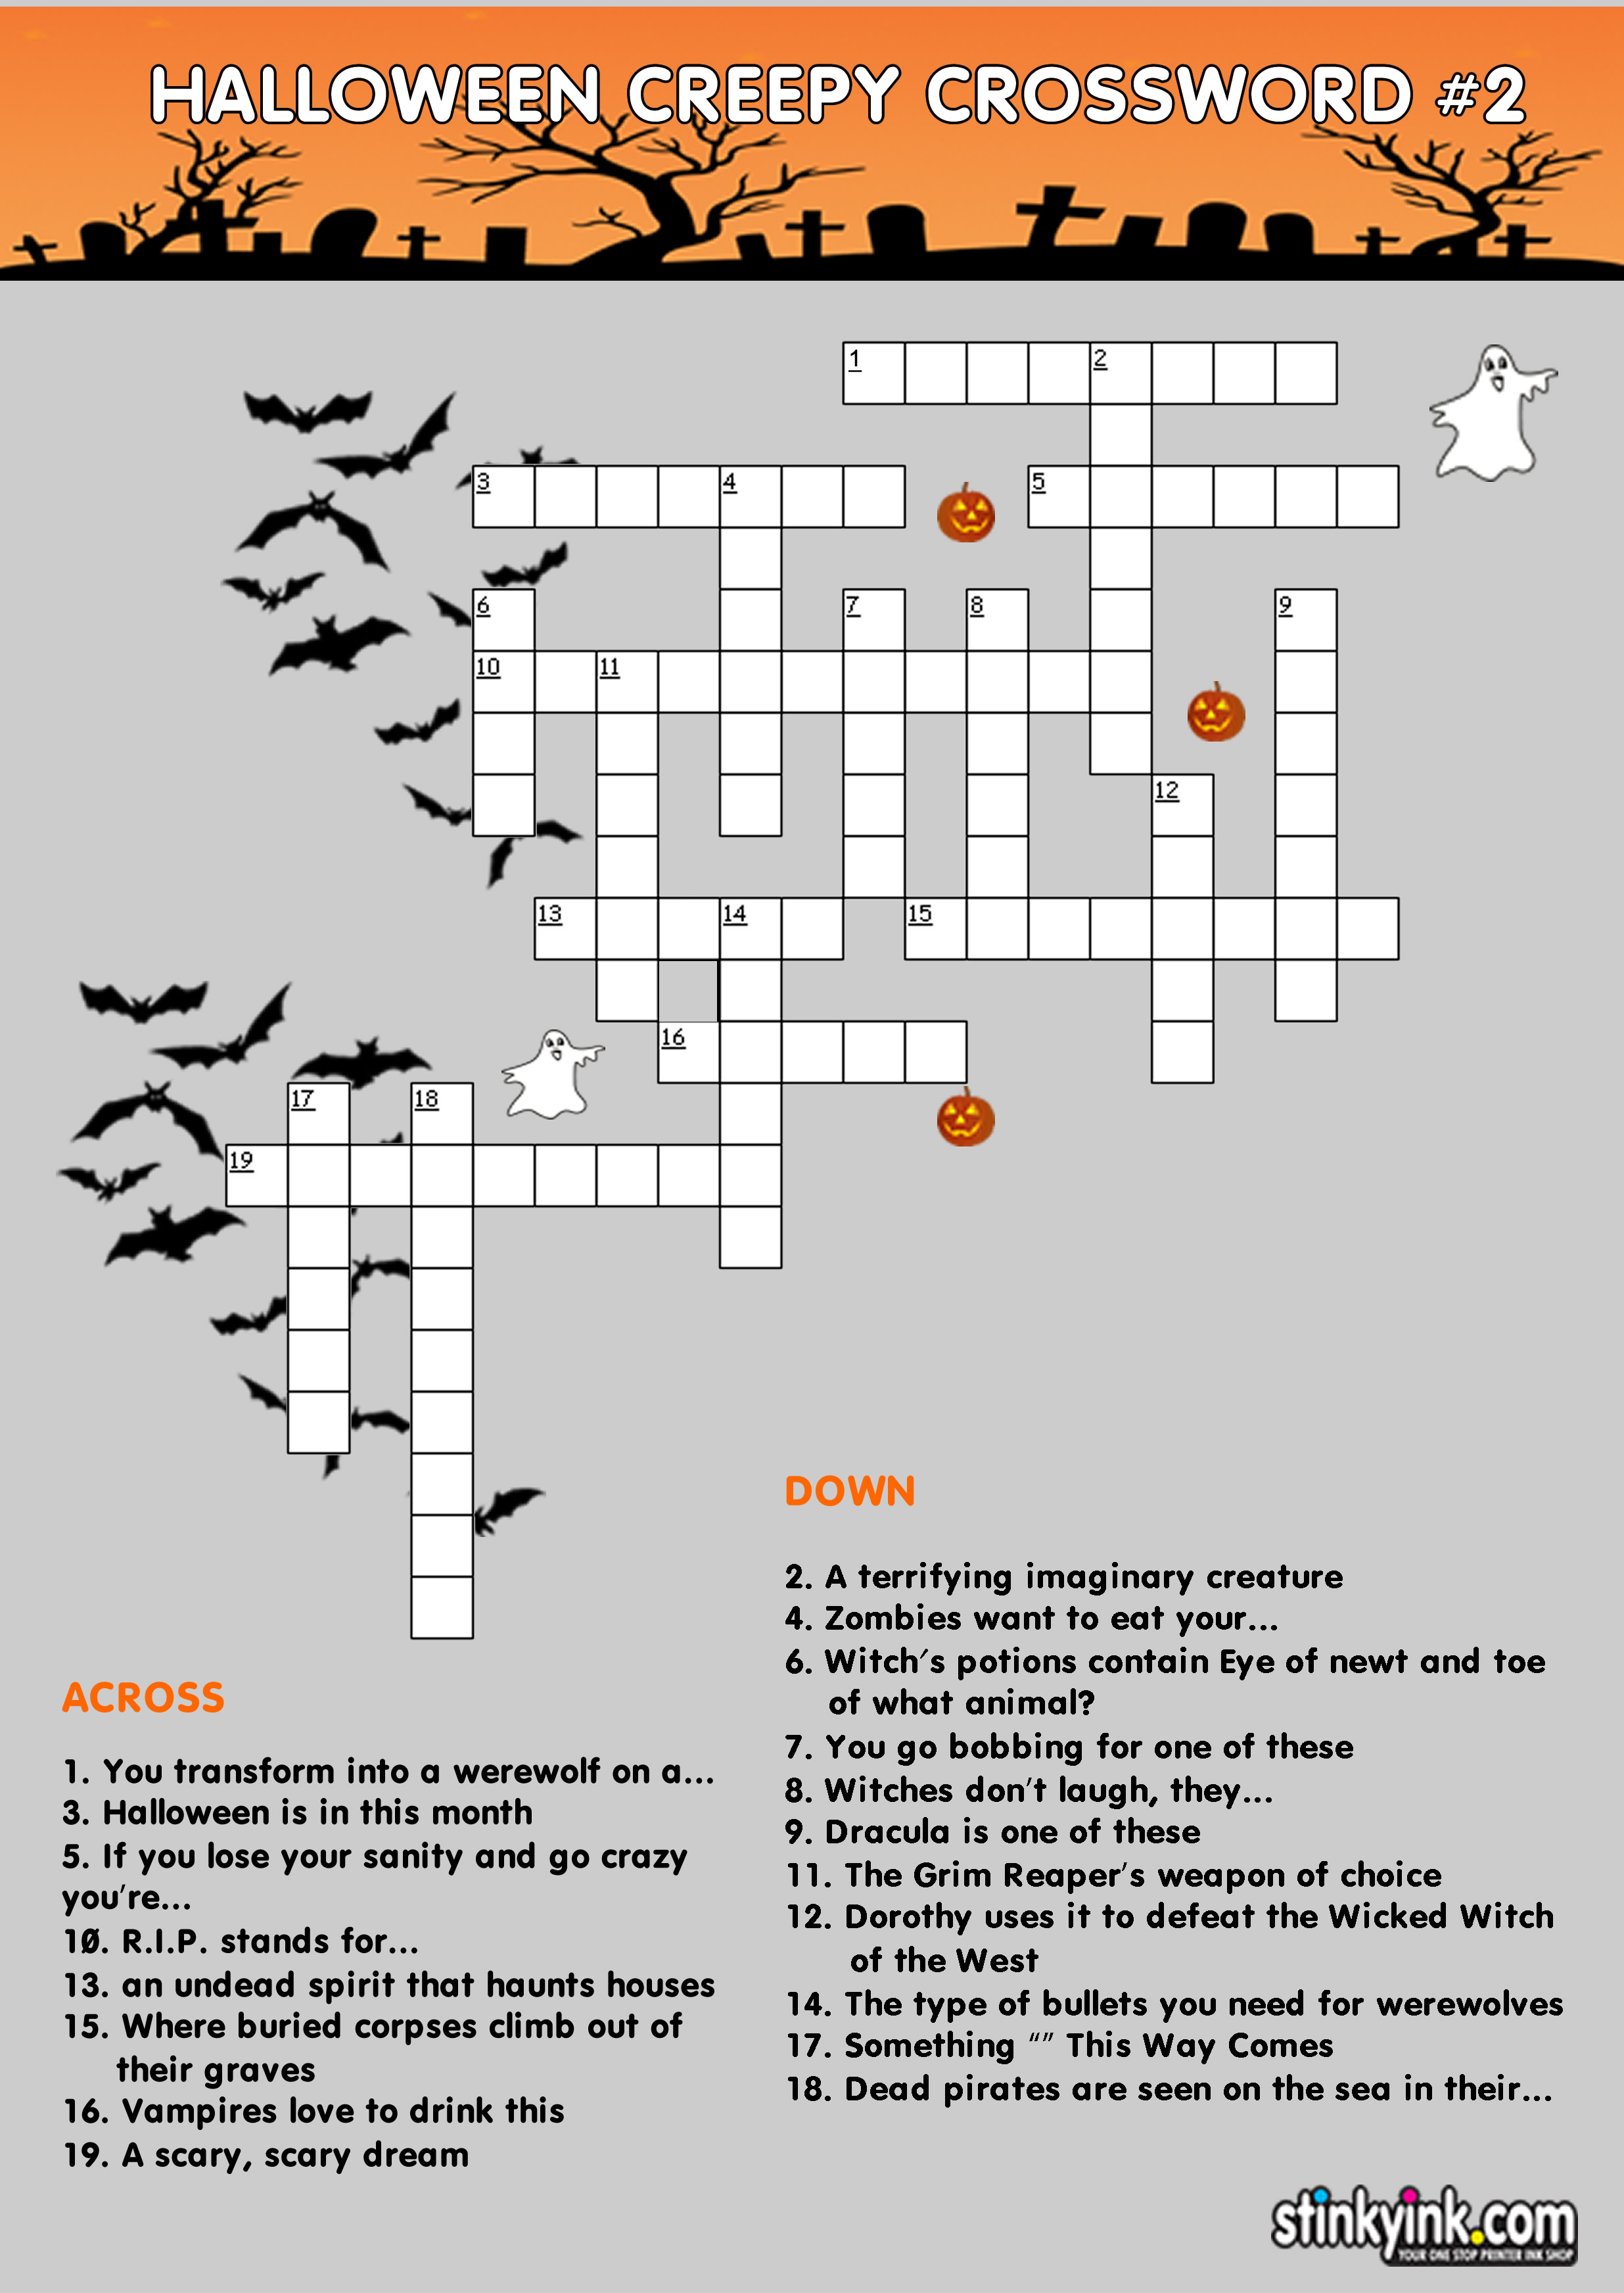 Elementary Interactive Crossword puzzles using riddles and